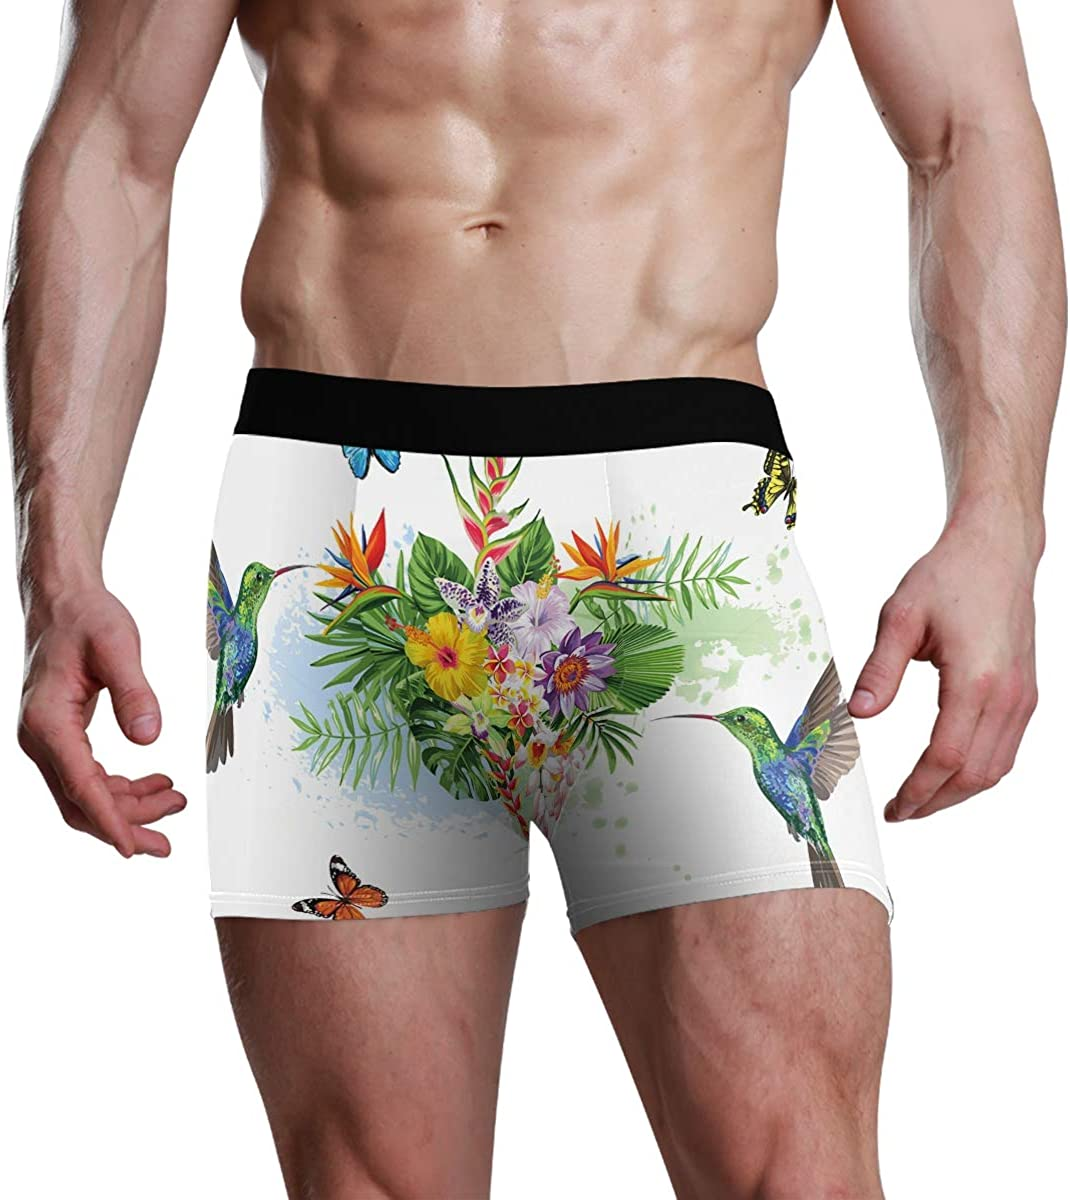 Mens Boxer Briefs Hummingbird and Butterfly Low Rise Trunks Underwear Breathable Bikini Boys